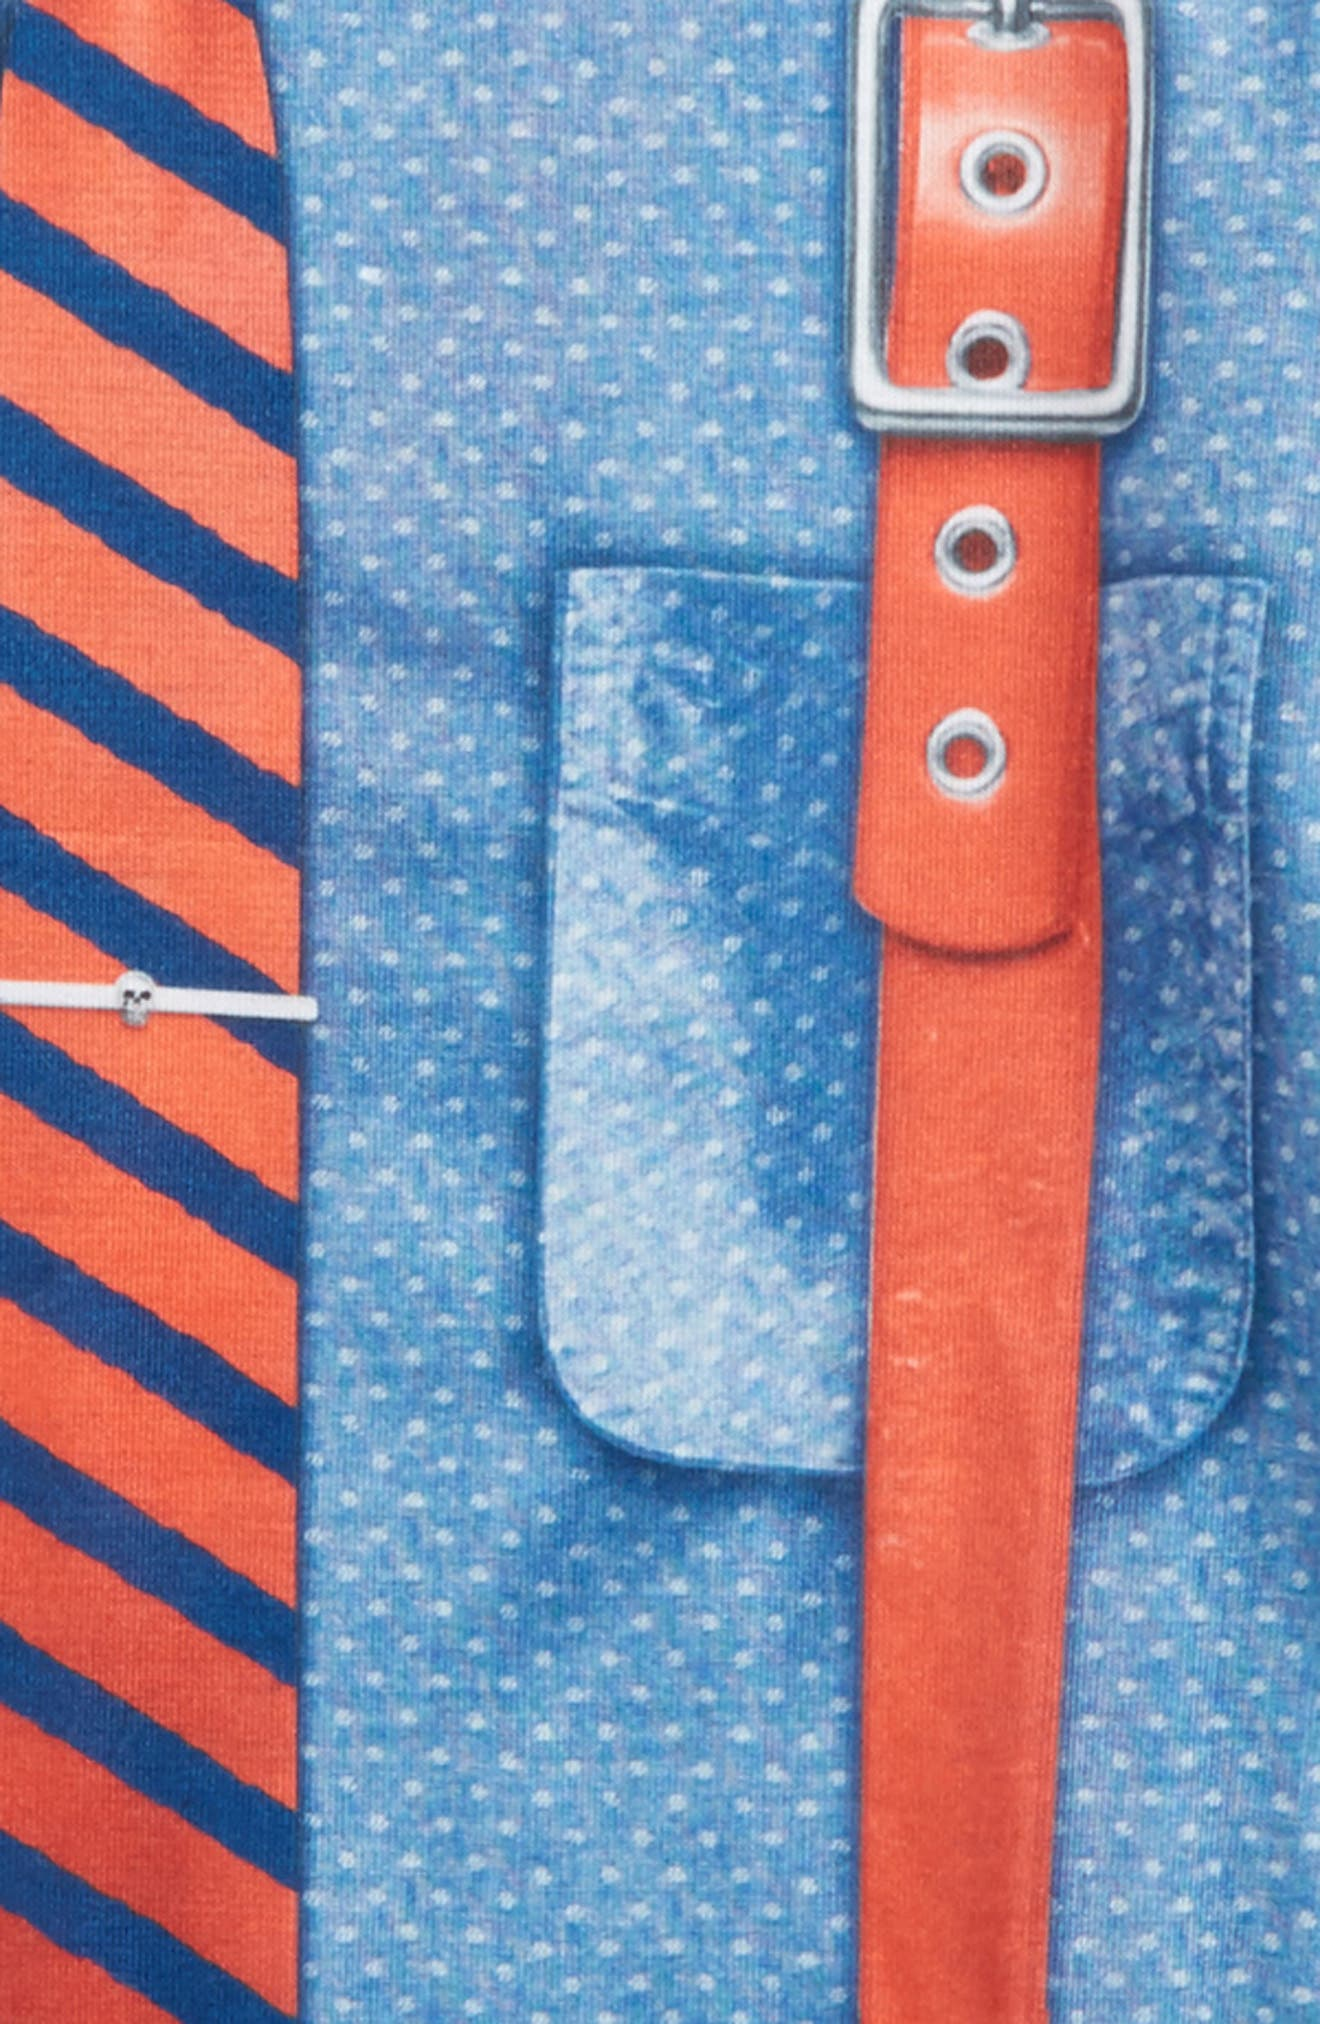 Hipster Tie & Suspenders T-Shirt with Tattoo Print Sleeves,                             Alternate thumbnail 2, color,                             Blue/ Red